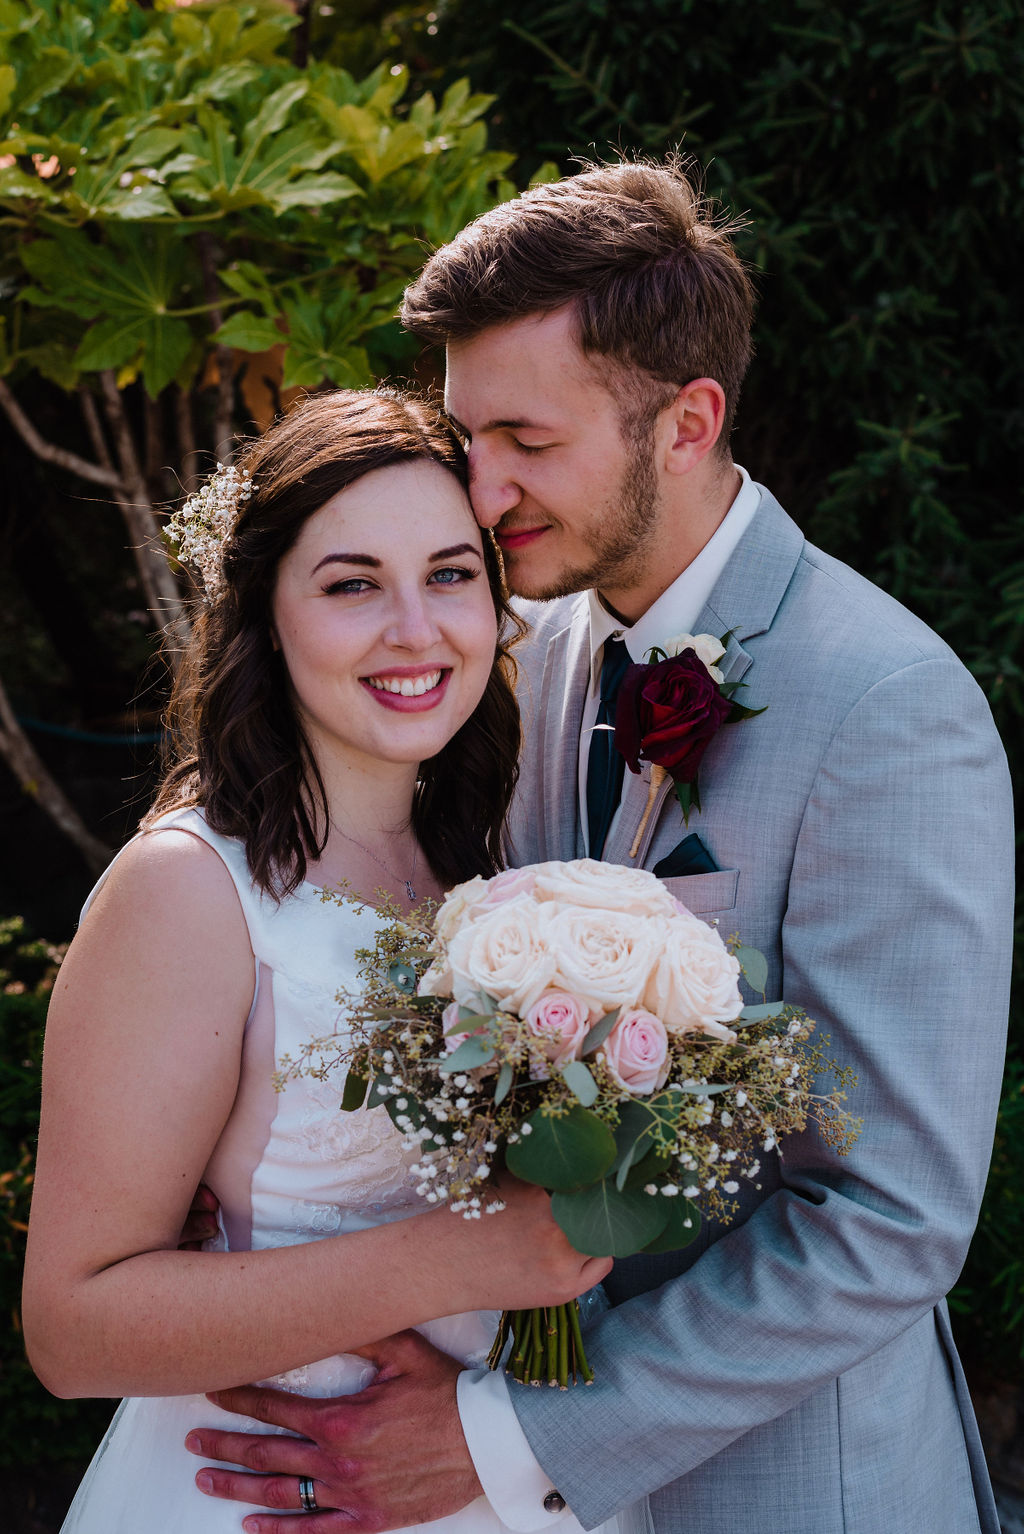 Bride smiles and holds bouquet while groom in grey suit holds her